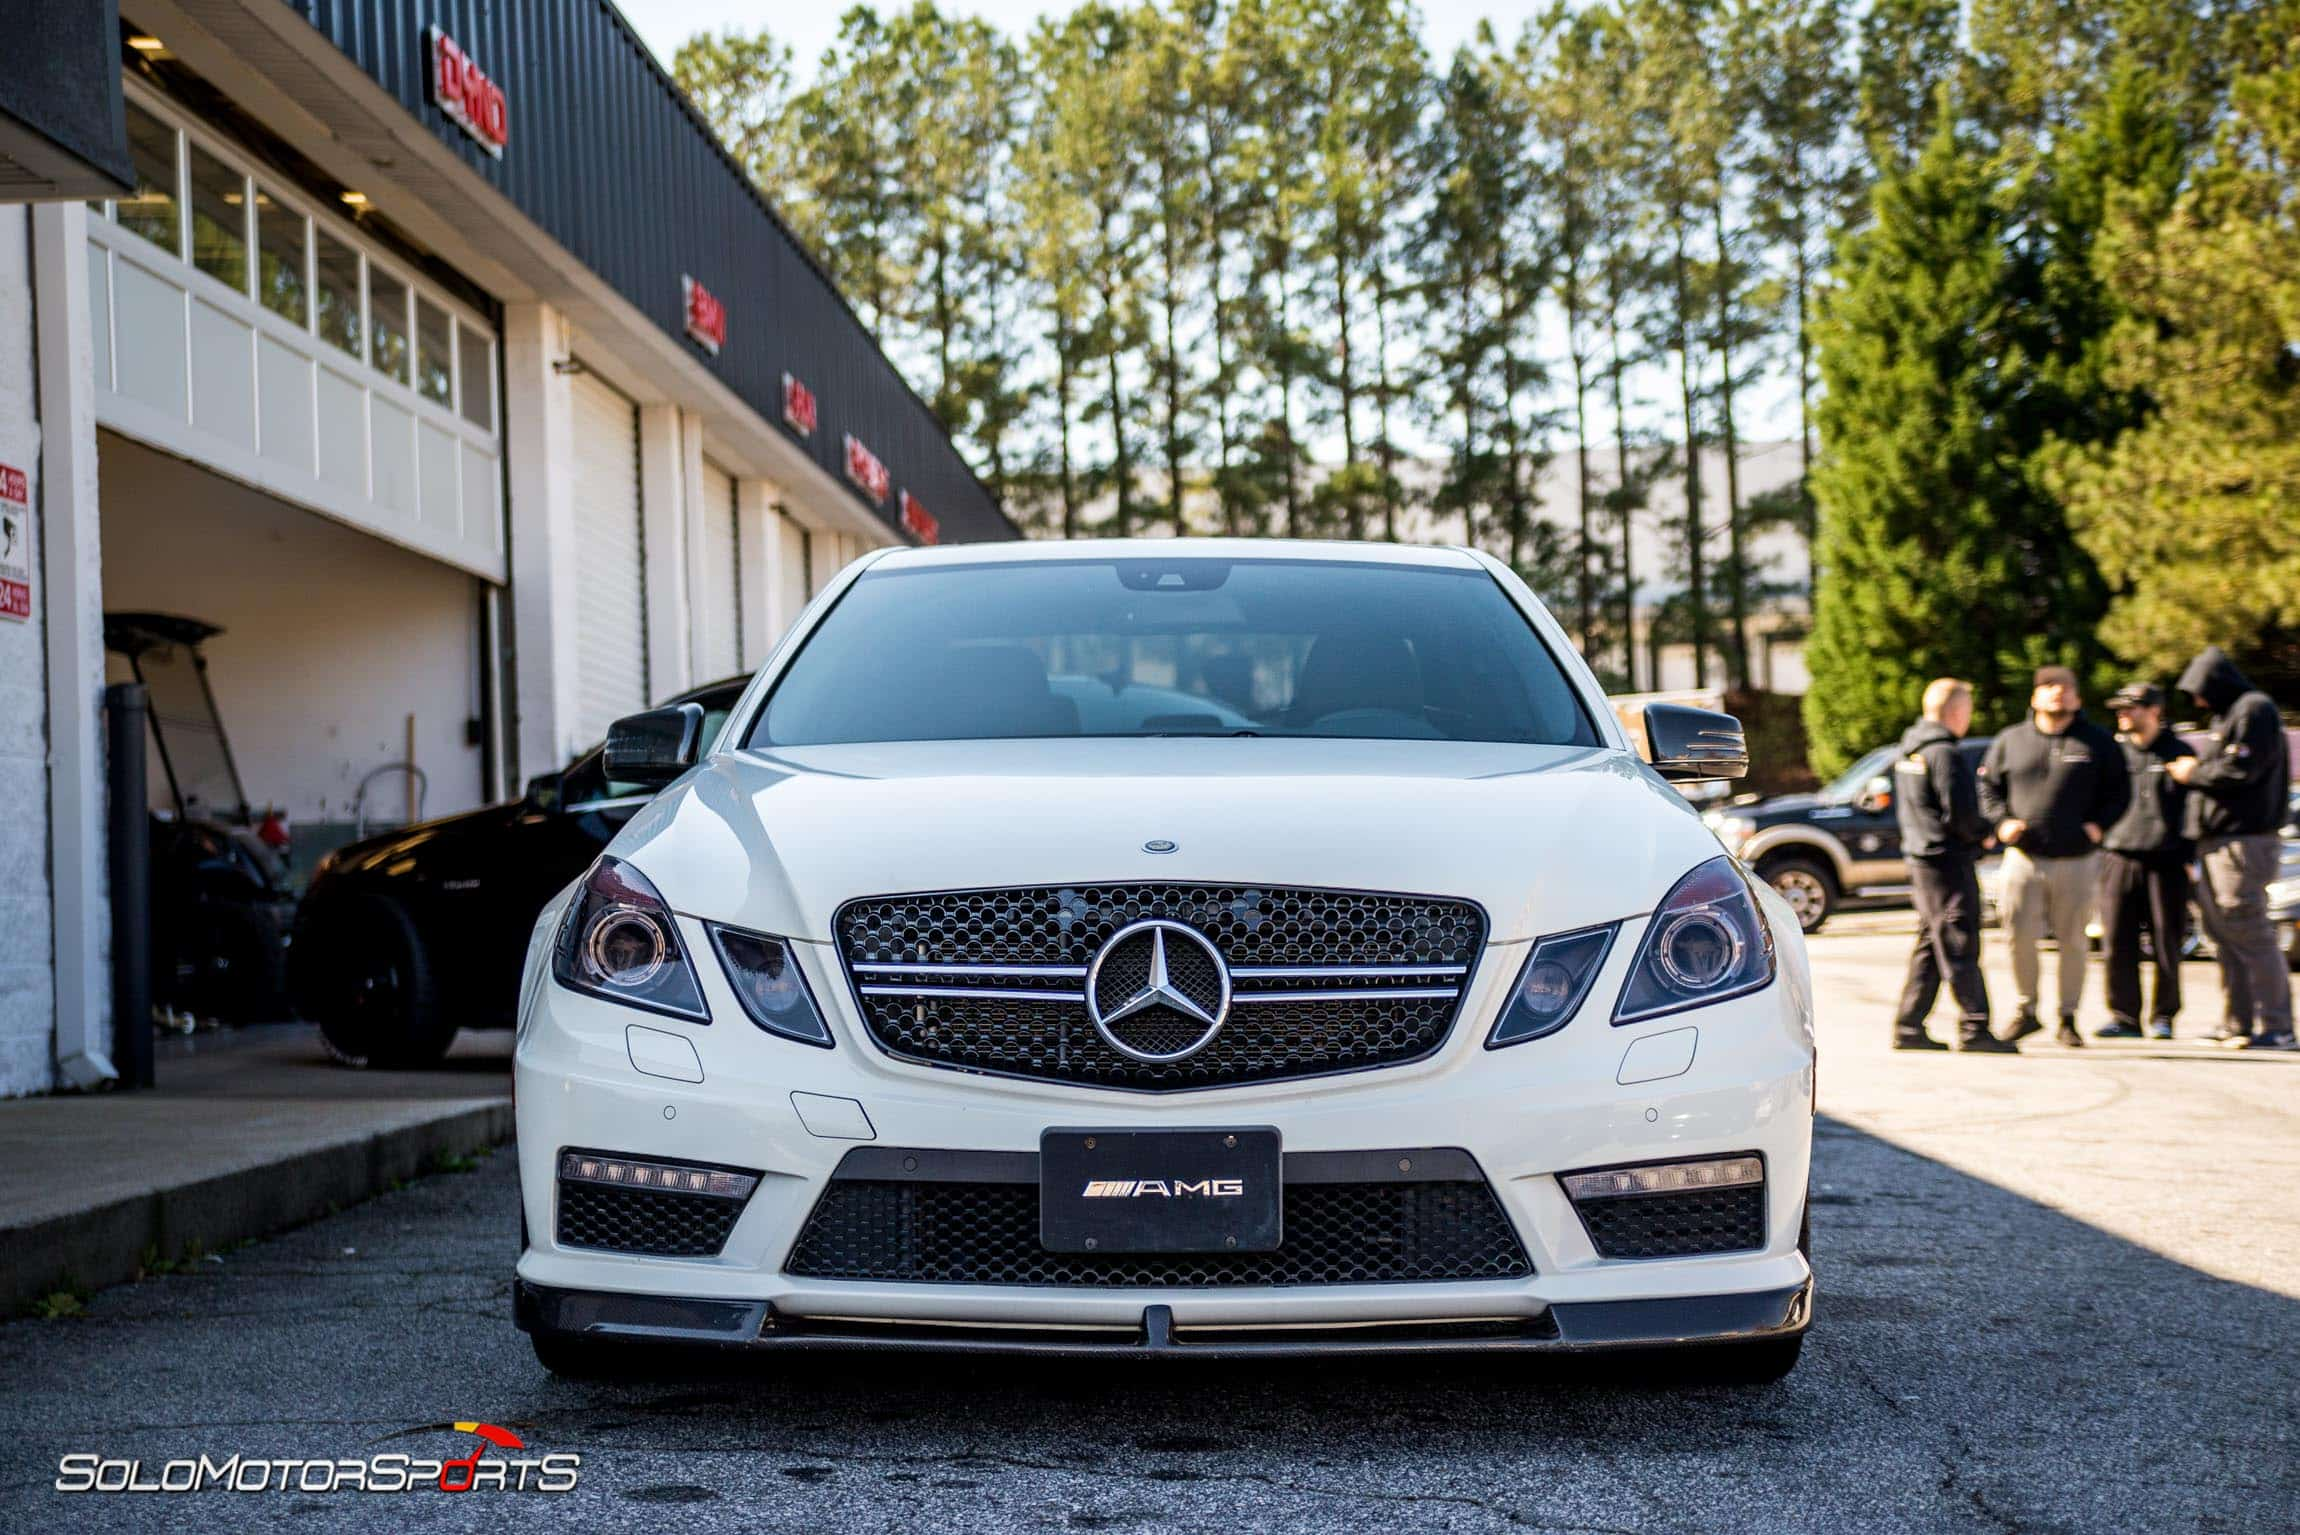 mercedesbenz mercedes mercedes benz amg e63 twinturbo v8 exhaust custom exhaust inhouse fabrication welding fabrication mbusa power atlanta ga one stop shop solo motorsports custom muffler